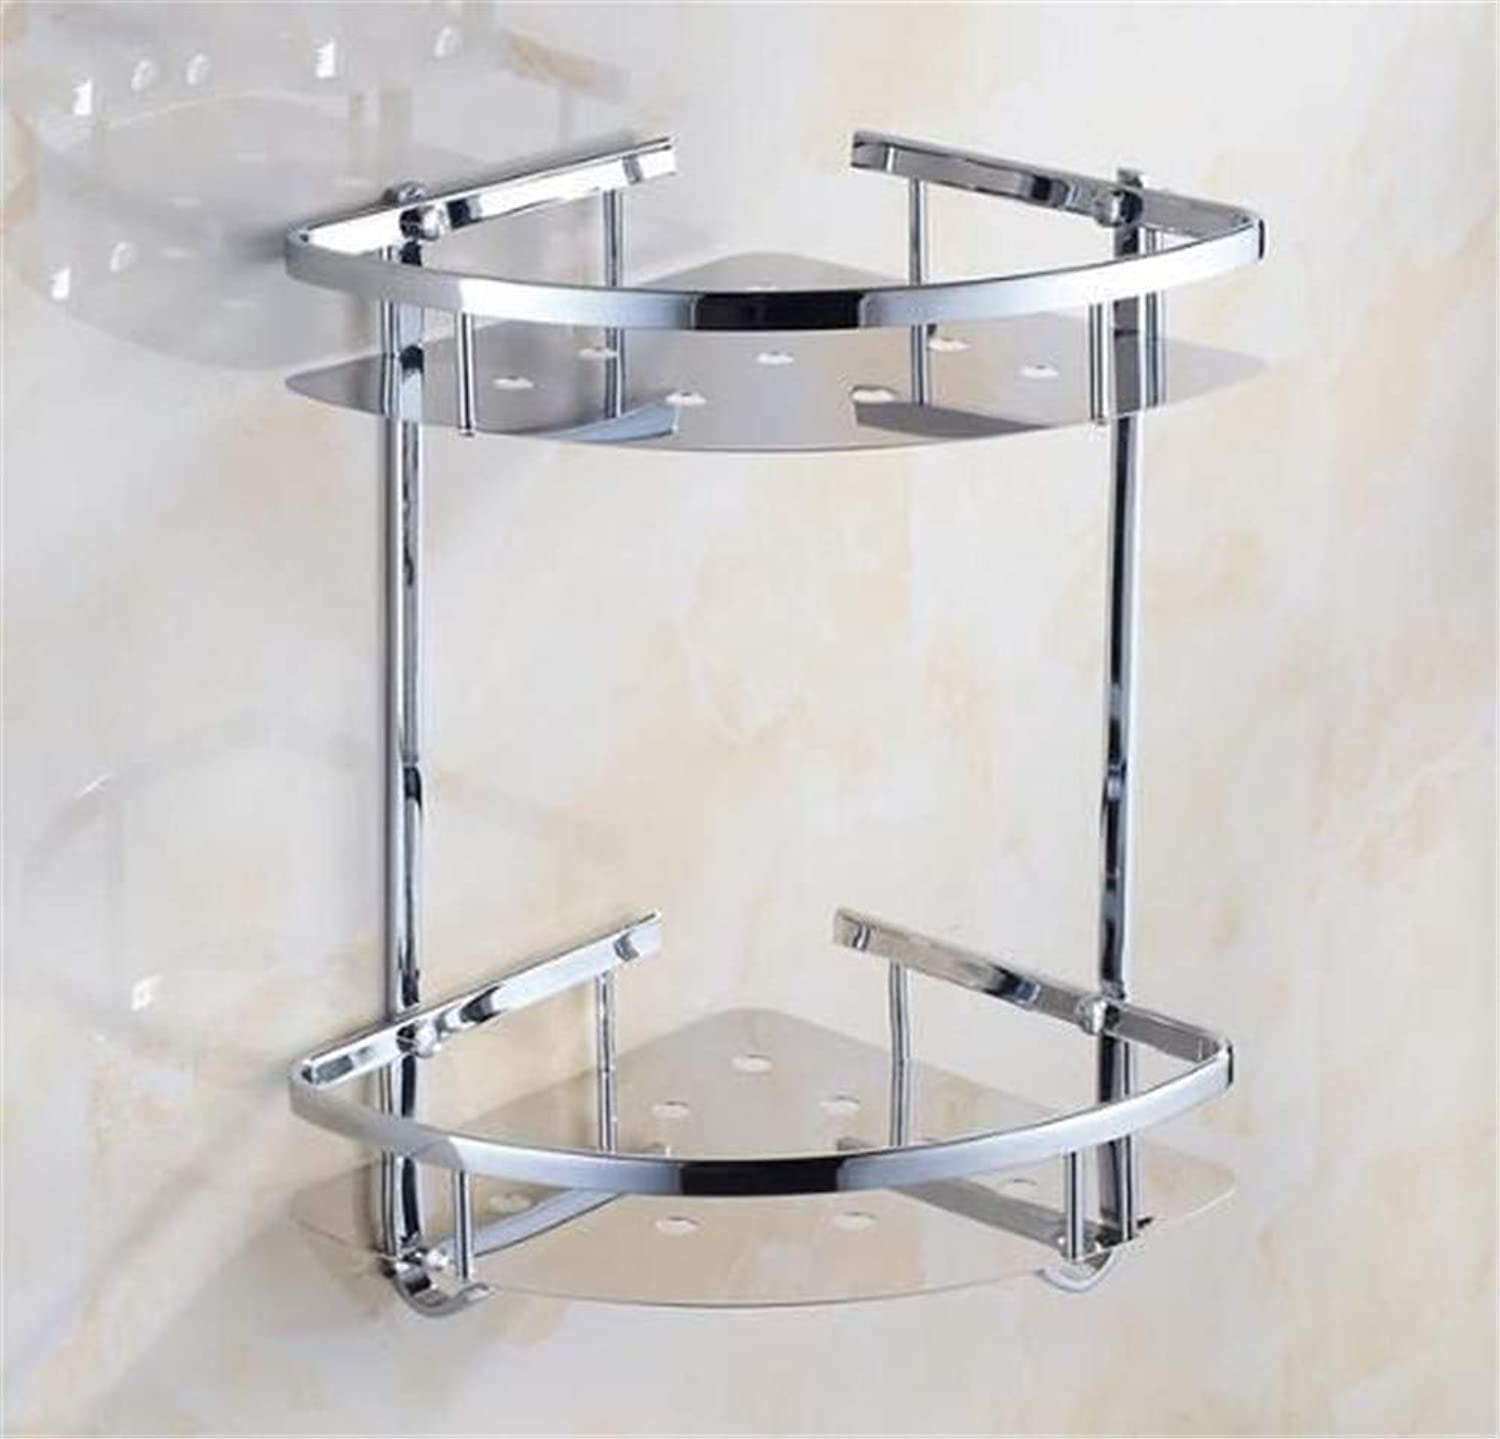 LUDSUY Antique Style Stainless Steel 304 Multifunctional Sturdy Corner Bathroom Shelf Modern Wall Shelf Bathroom Rack Accessories,D